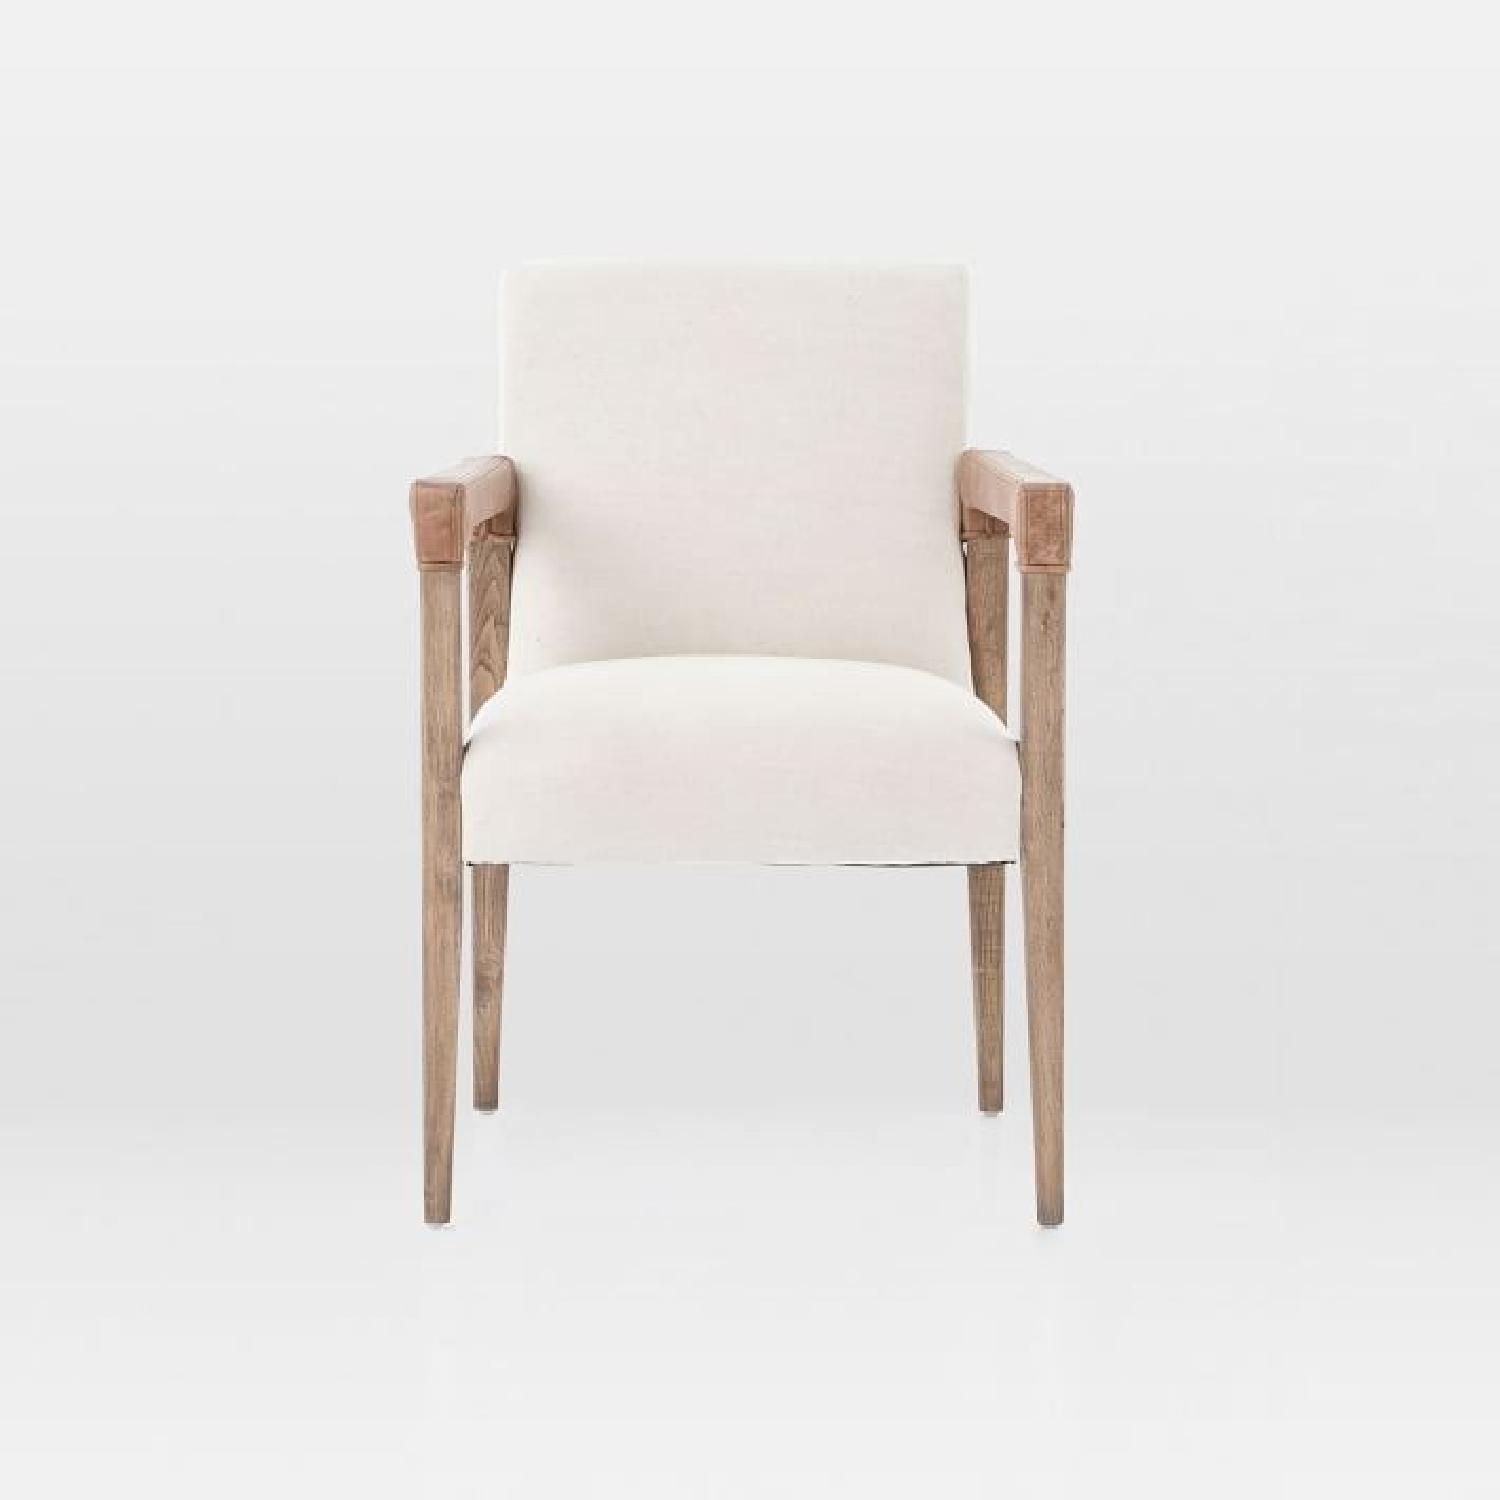 West Elm Wood & Fabric Chair w/ Leather Accent - image-5